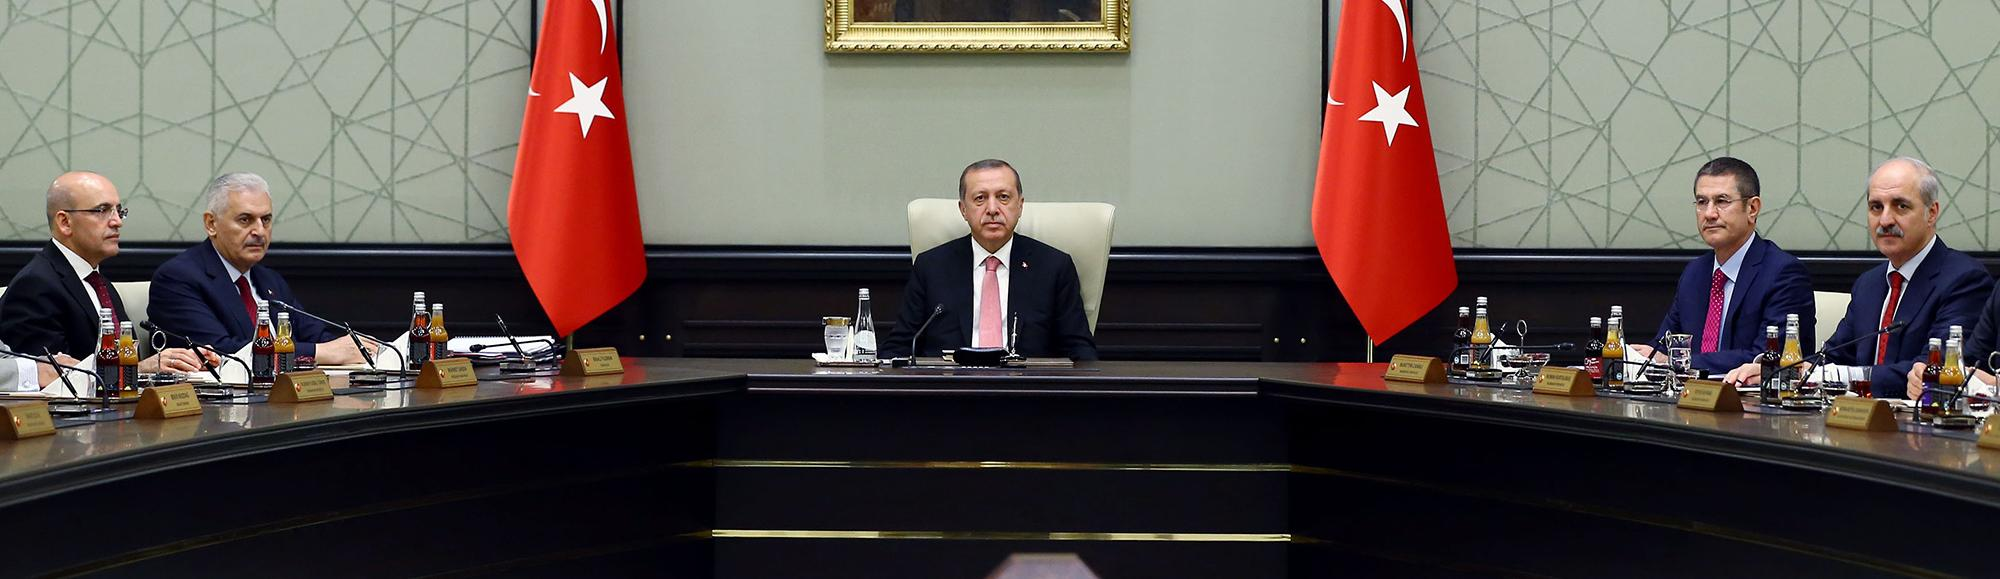 Erdogan calls state of emergency, says 'other countries' behind failed coup